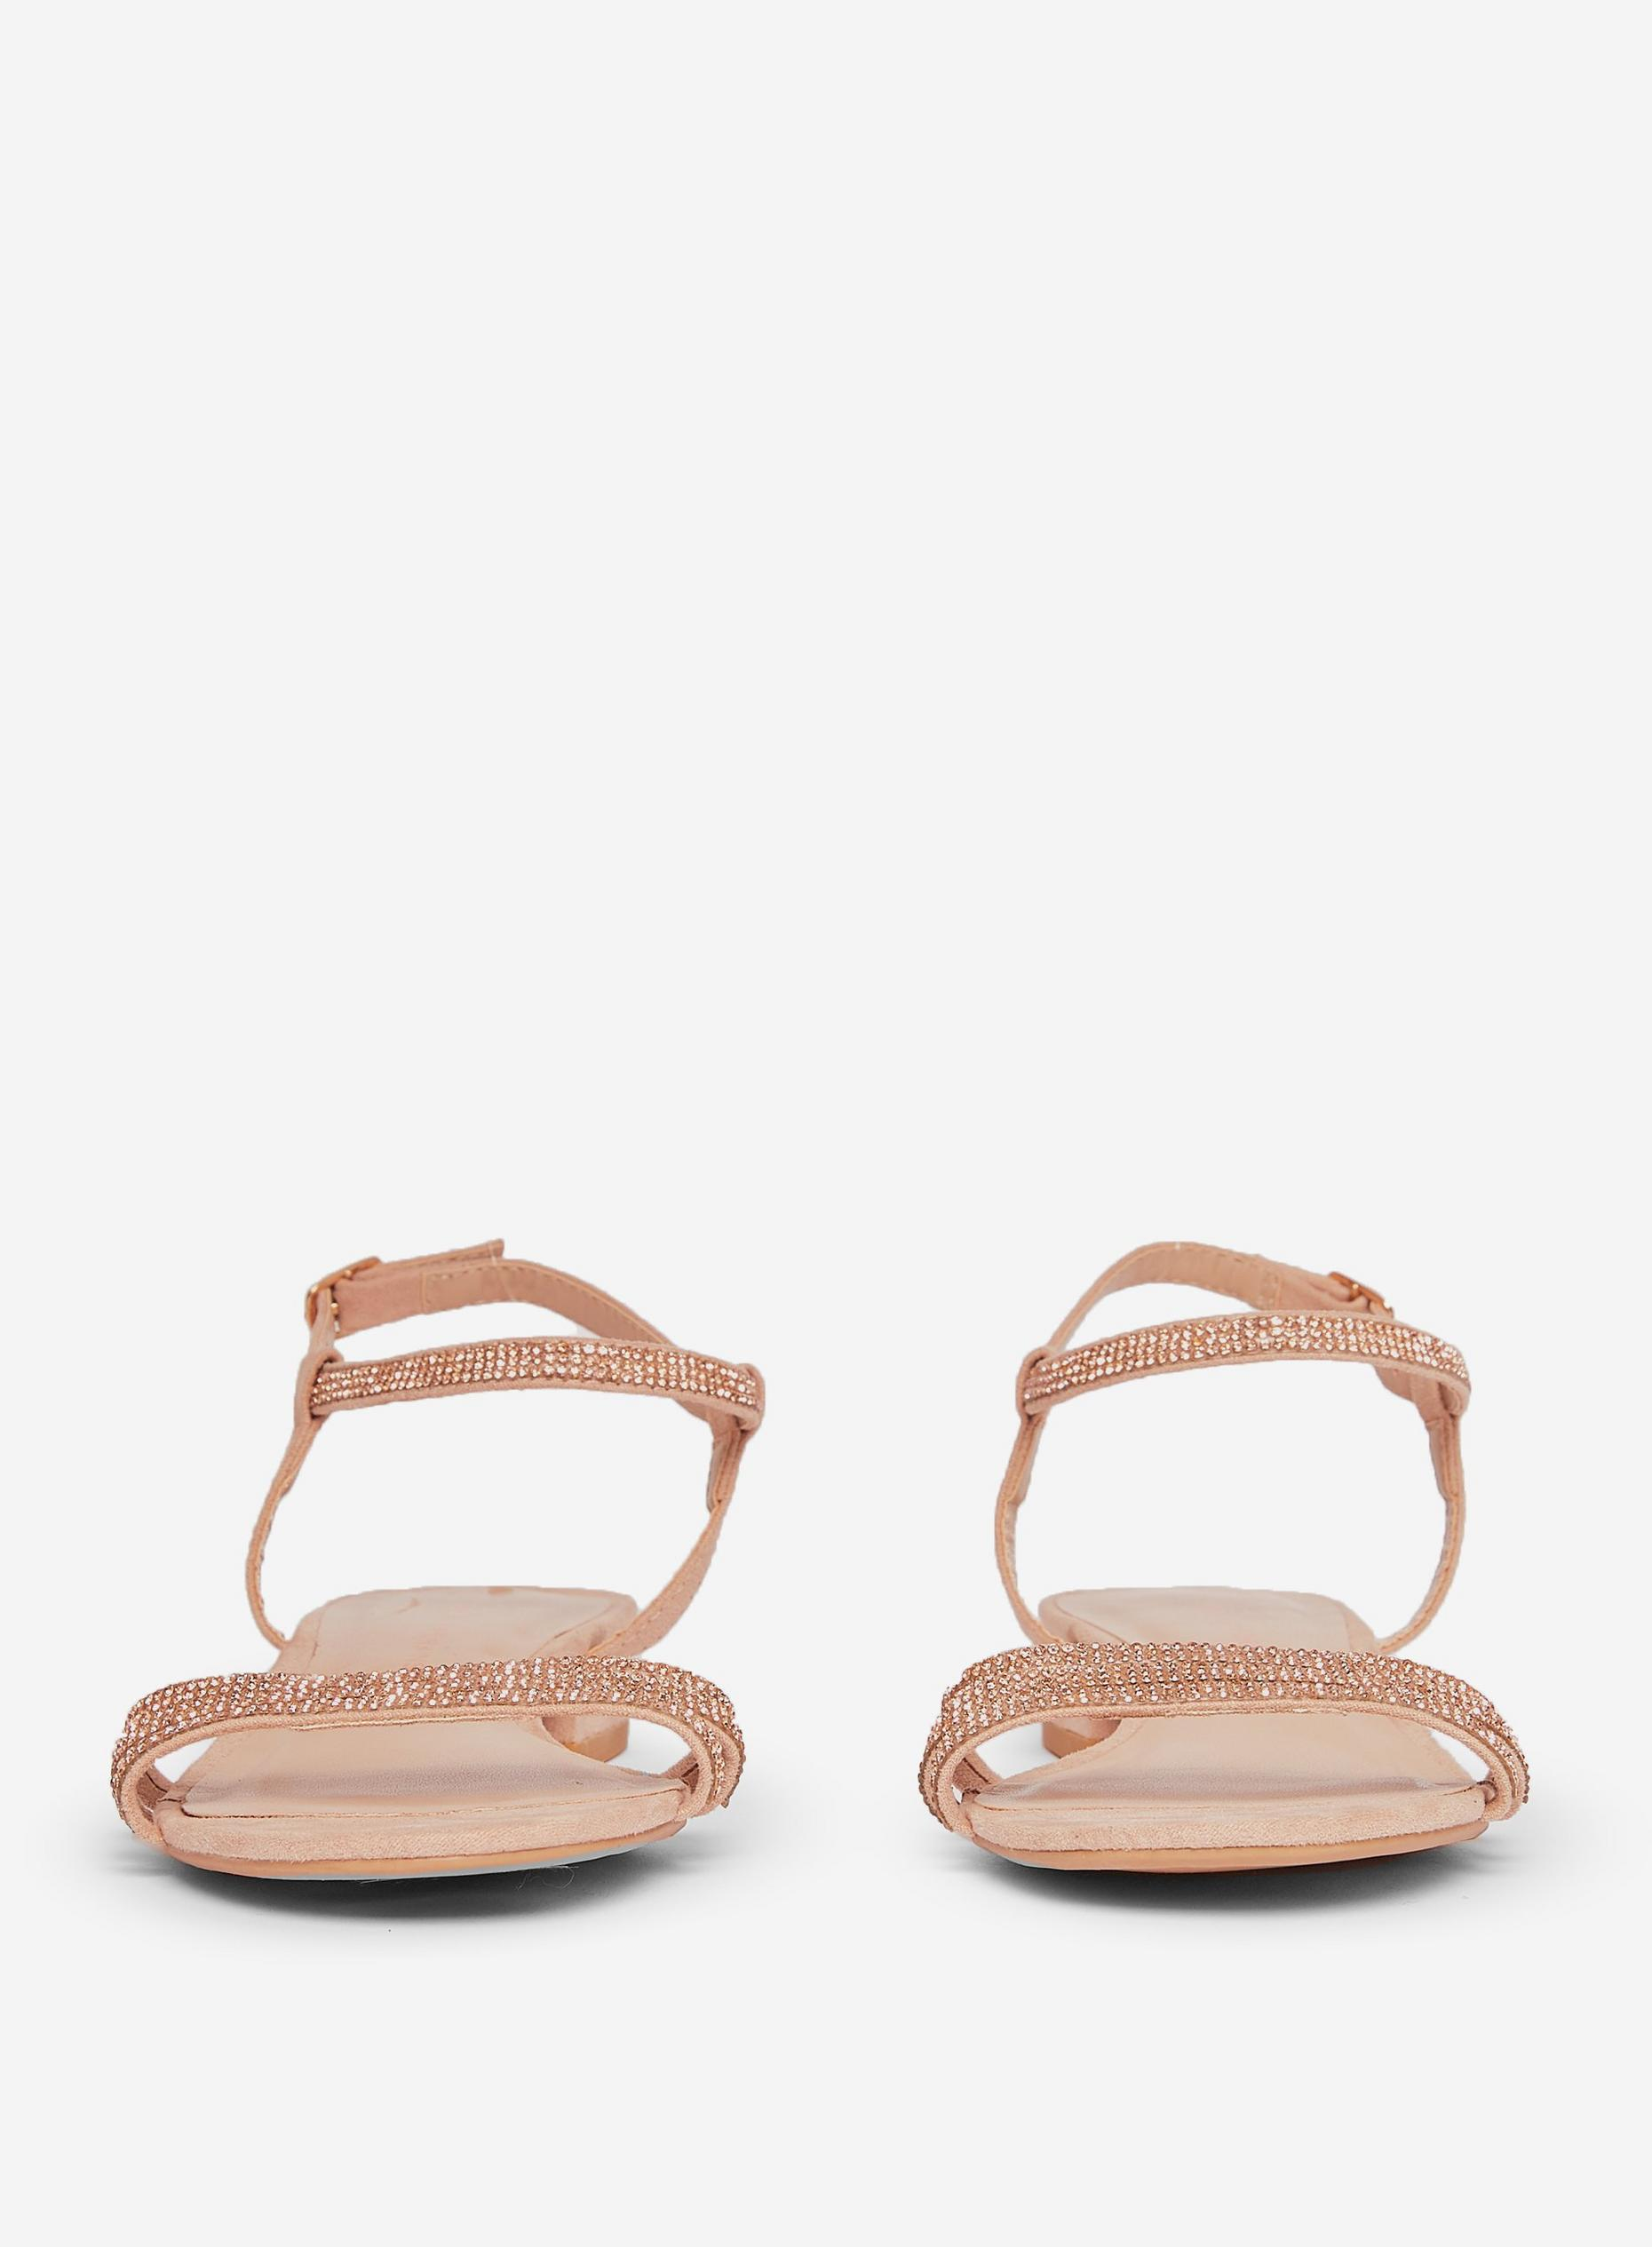 Blush Soo Heeled Sandals